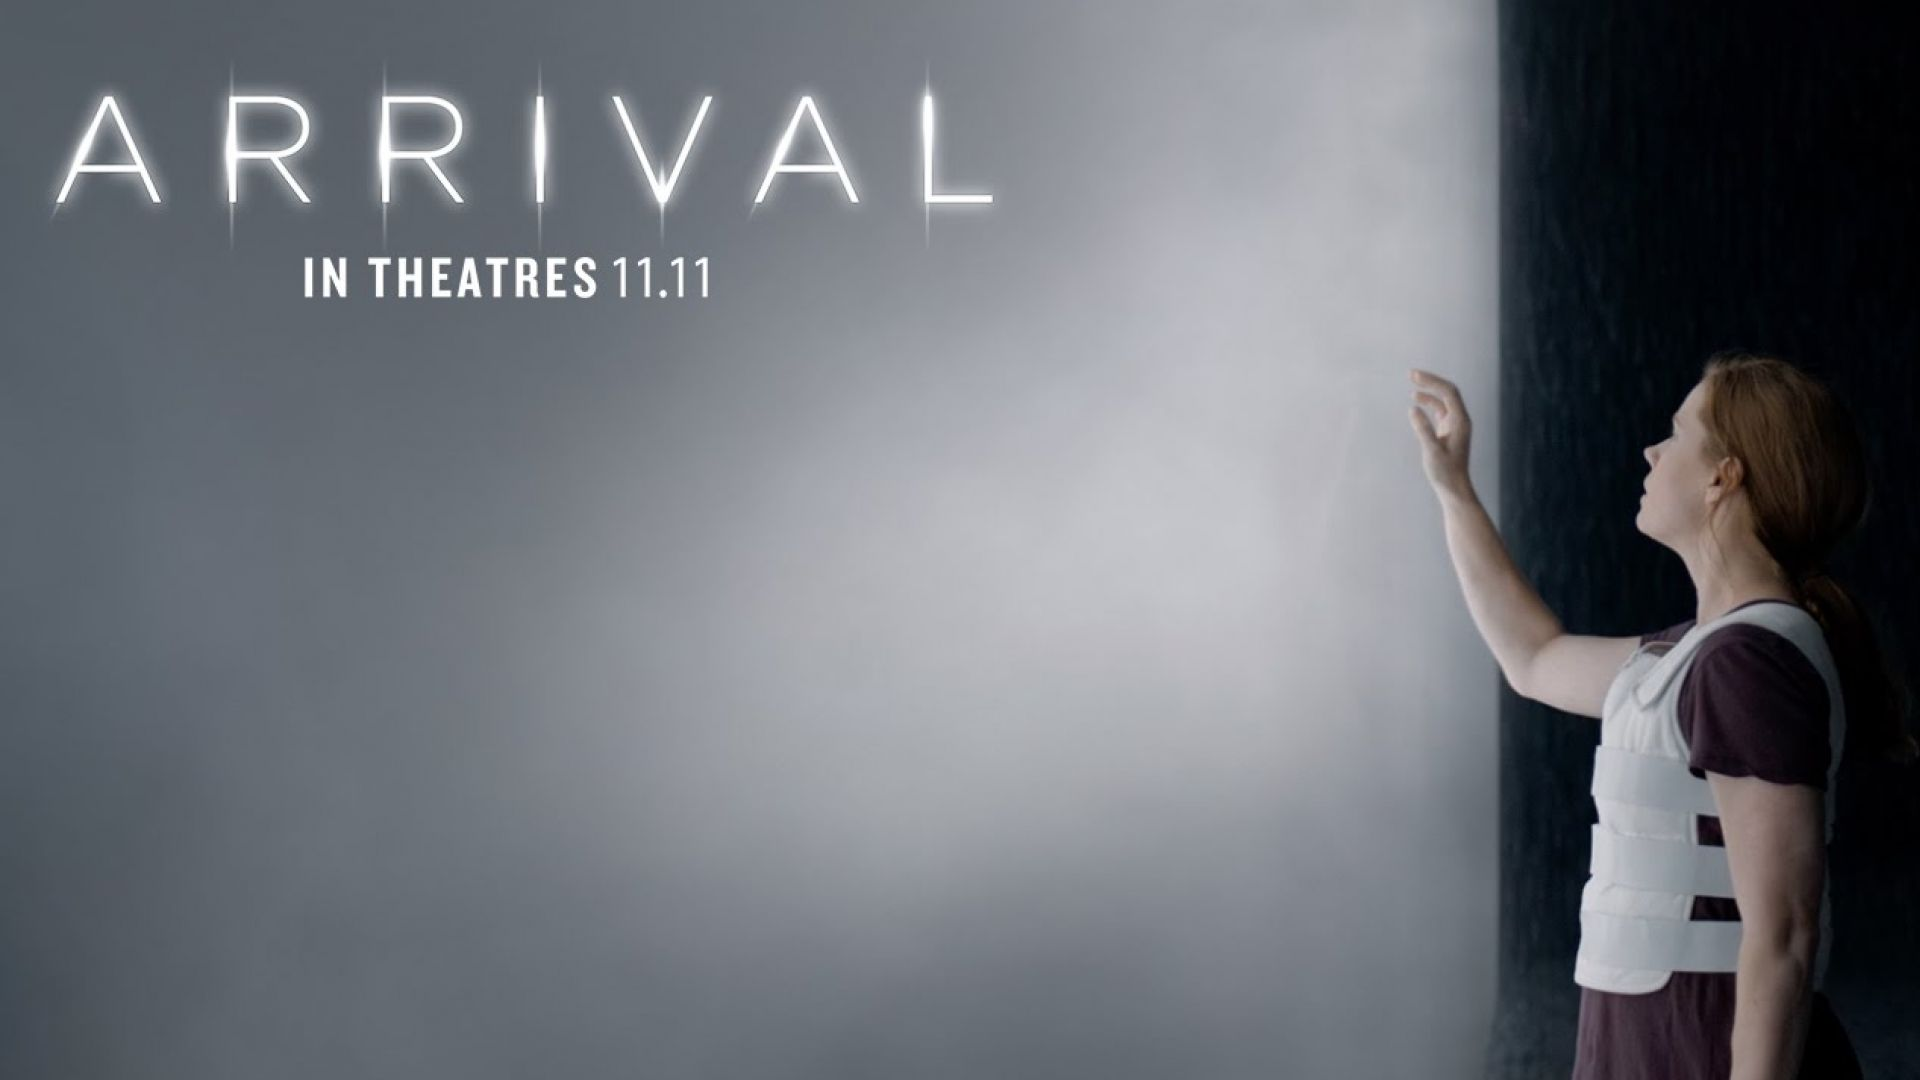 Arrival - Final trailer for the Amy Adams Sci-fi